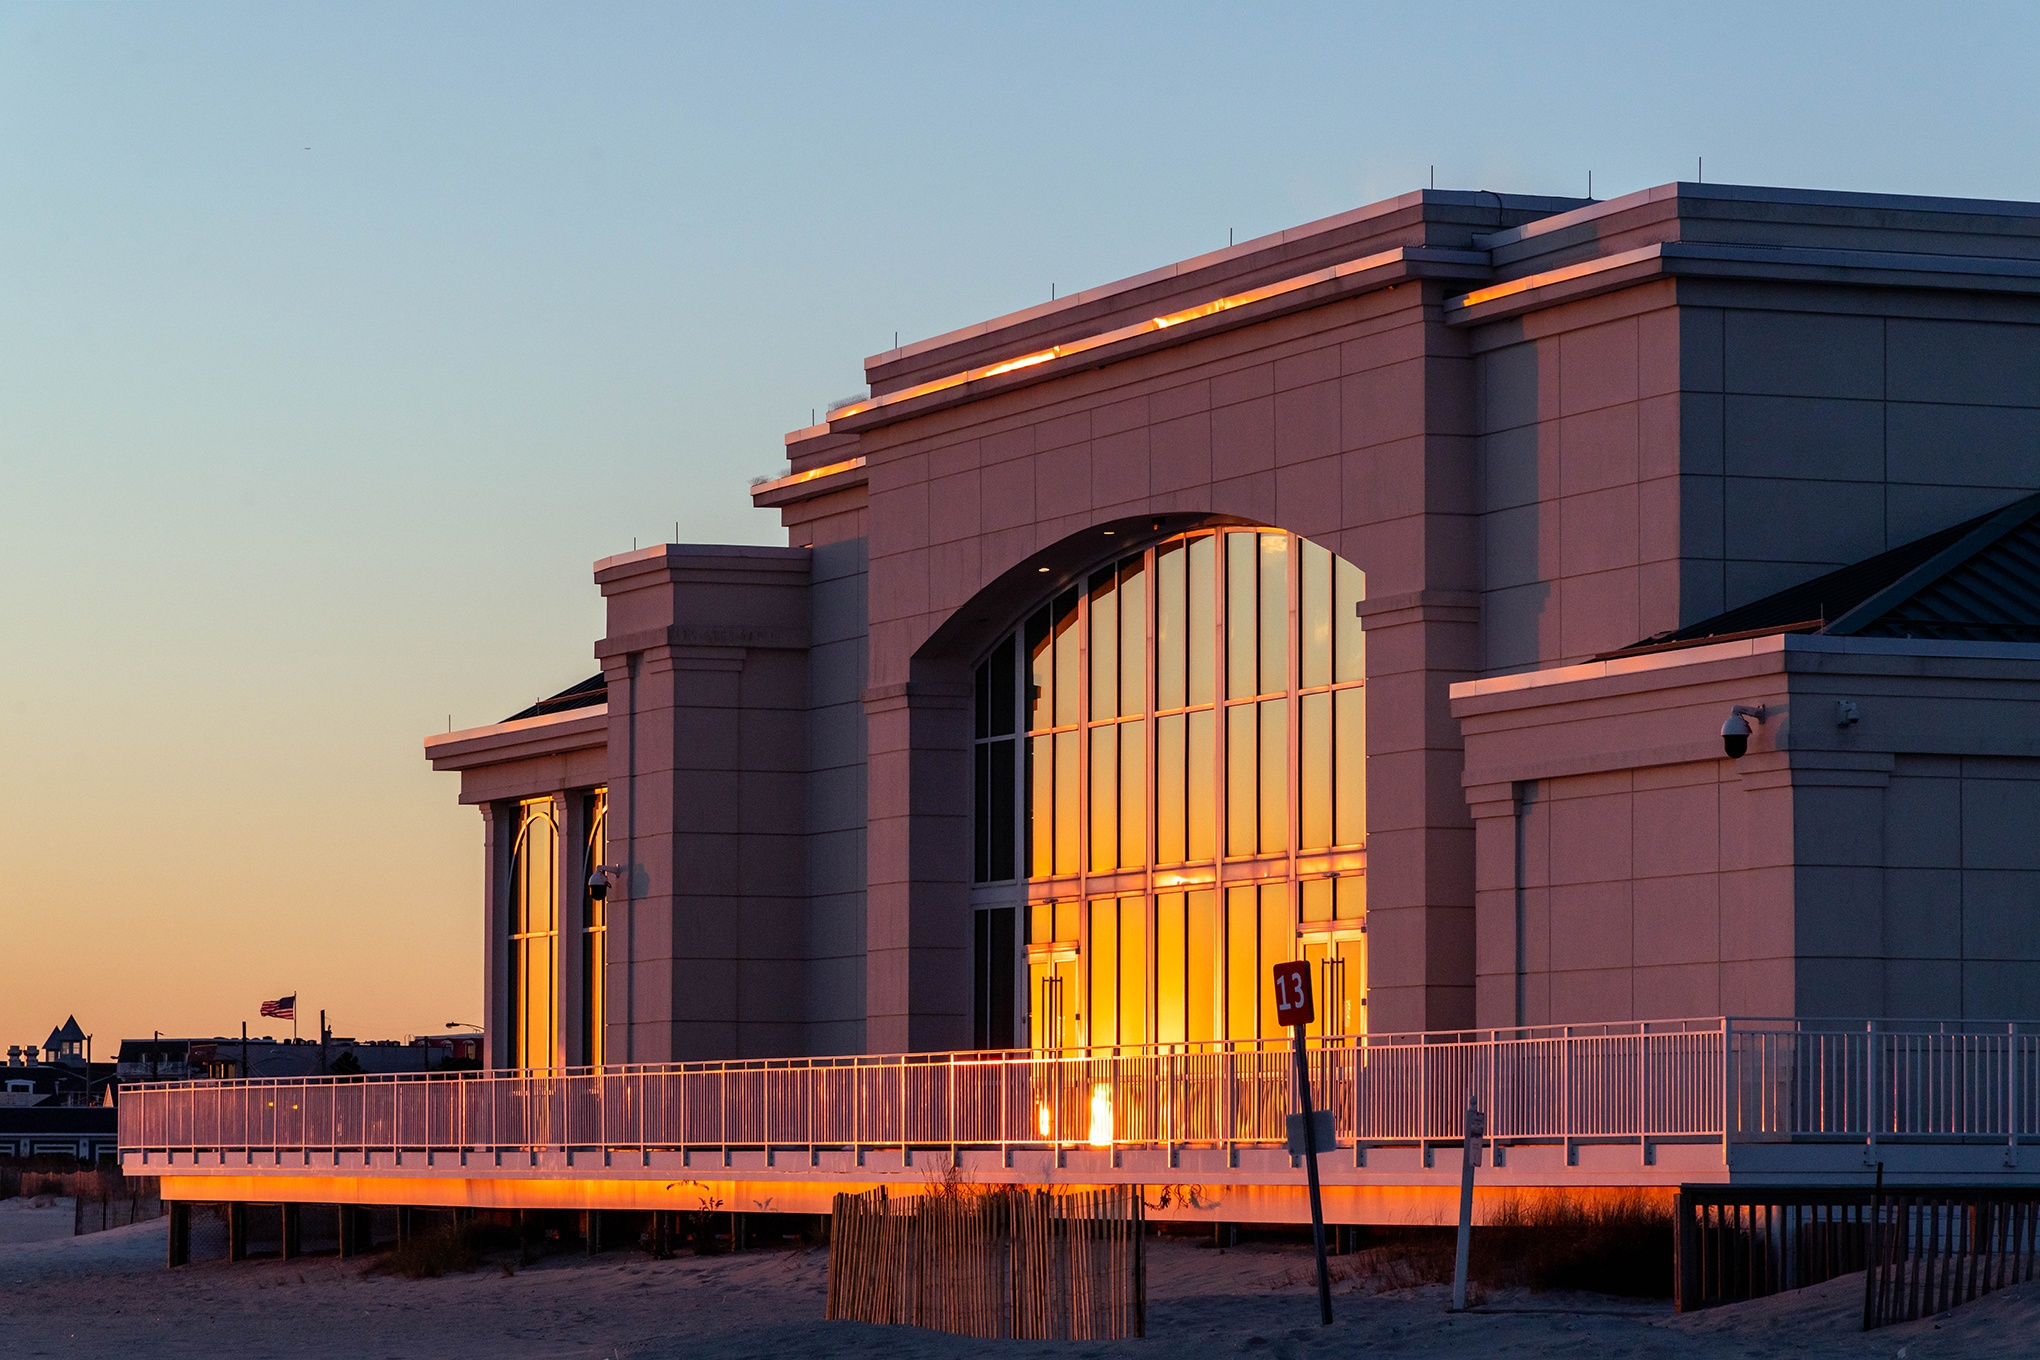 Sunset light reflecting off the windows on Convention Hall